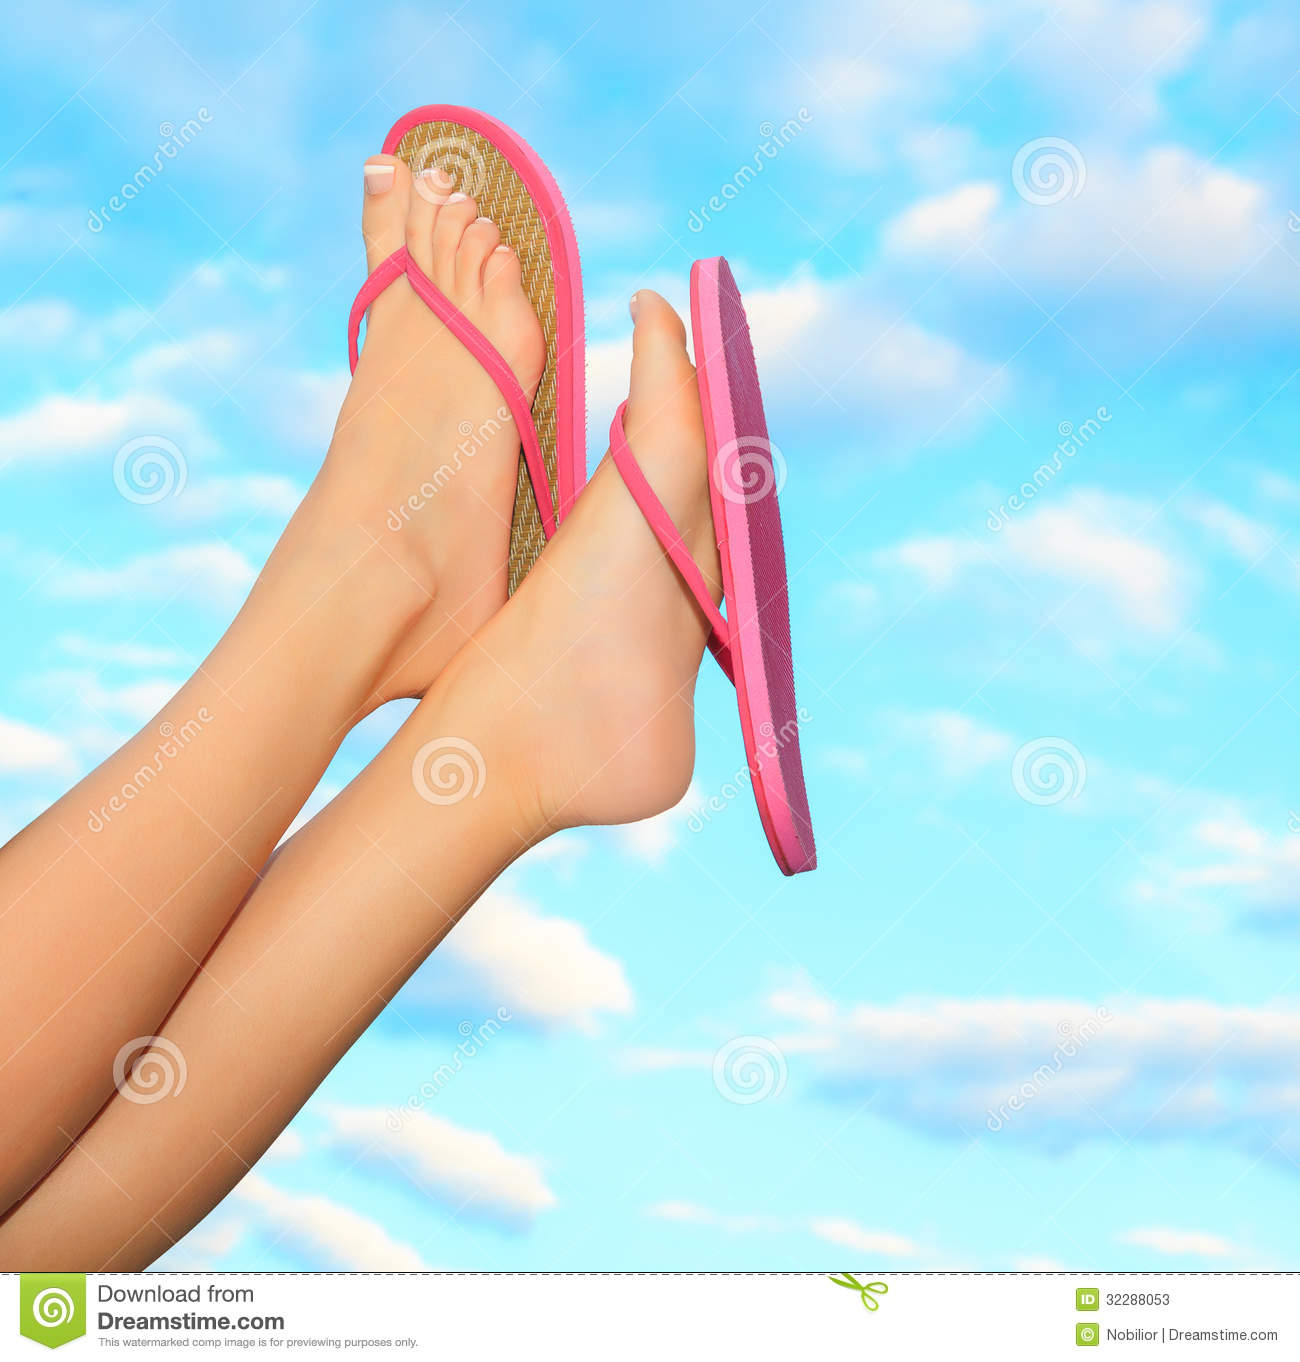 e8a16d35ff2d26 Female Legs In Pink Sandals Stock Image - Image of fashion ...